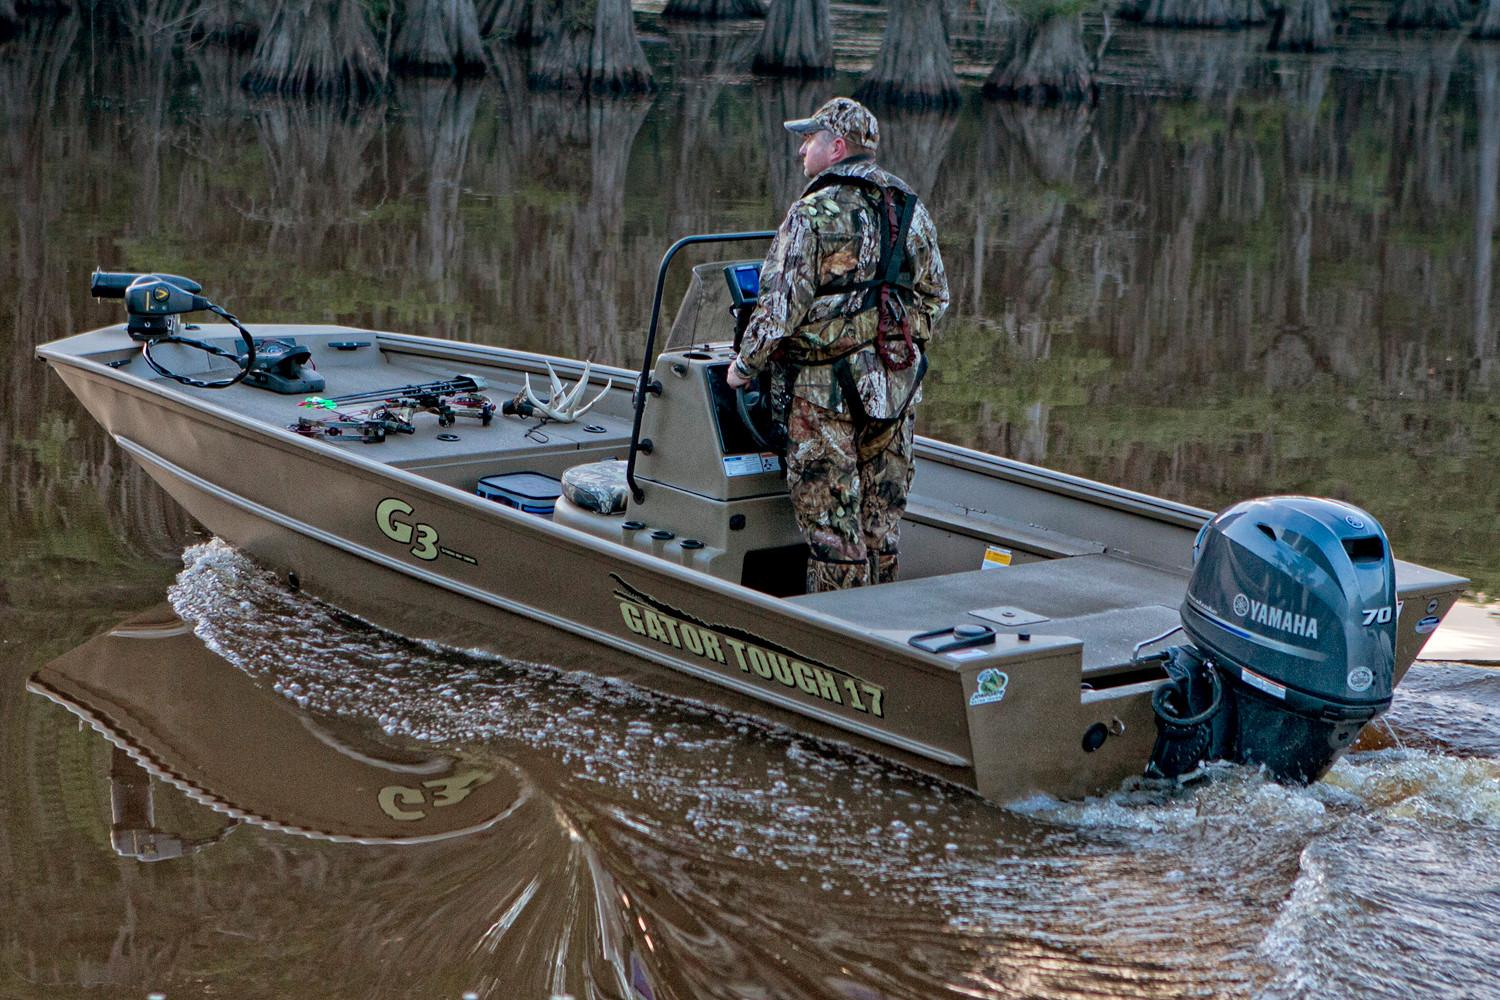 2018 G3 Gator Tough 17 CC in West Monroe, Louisiana - Photo 1